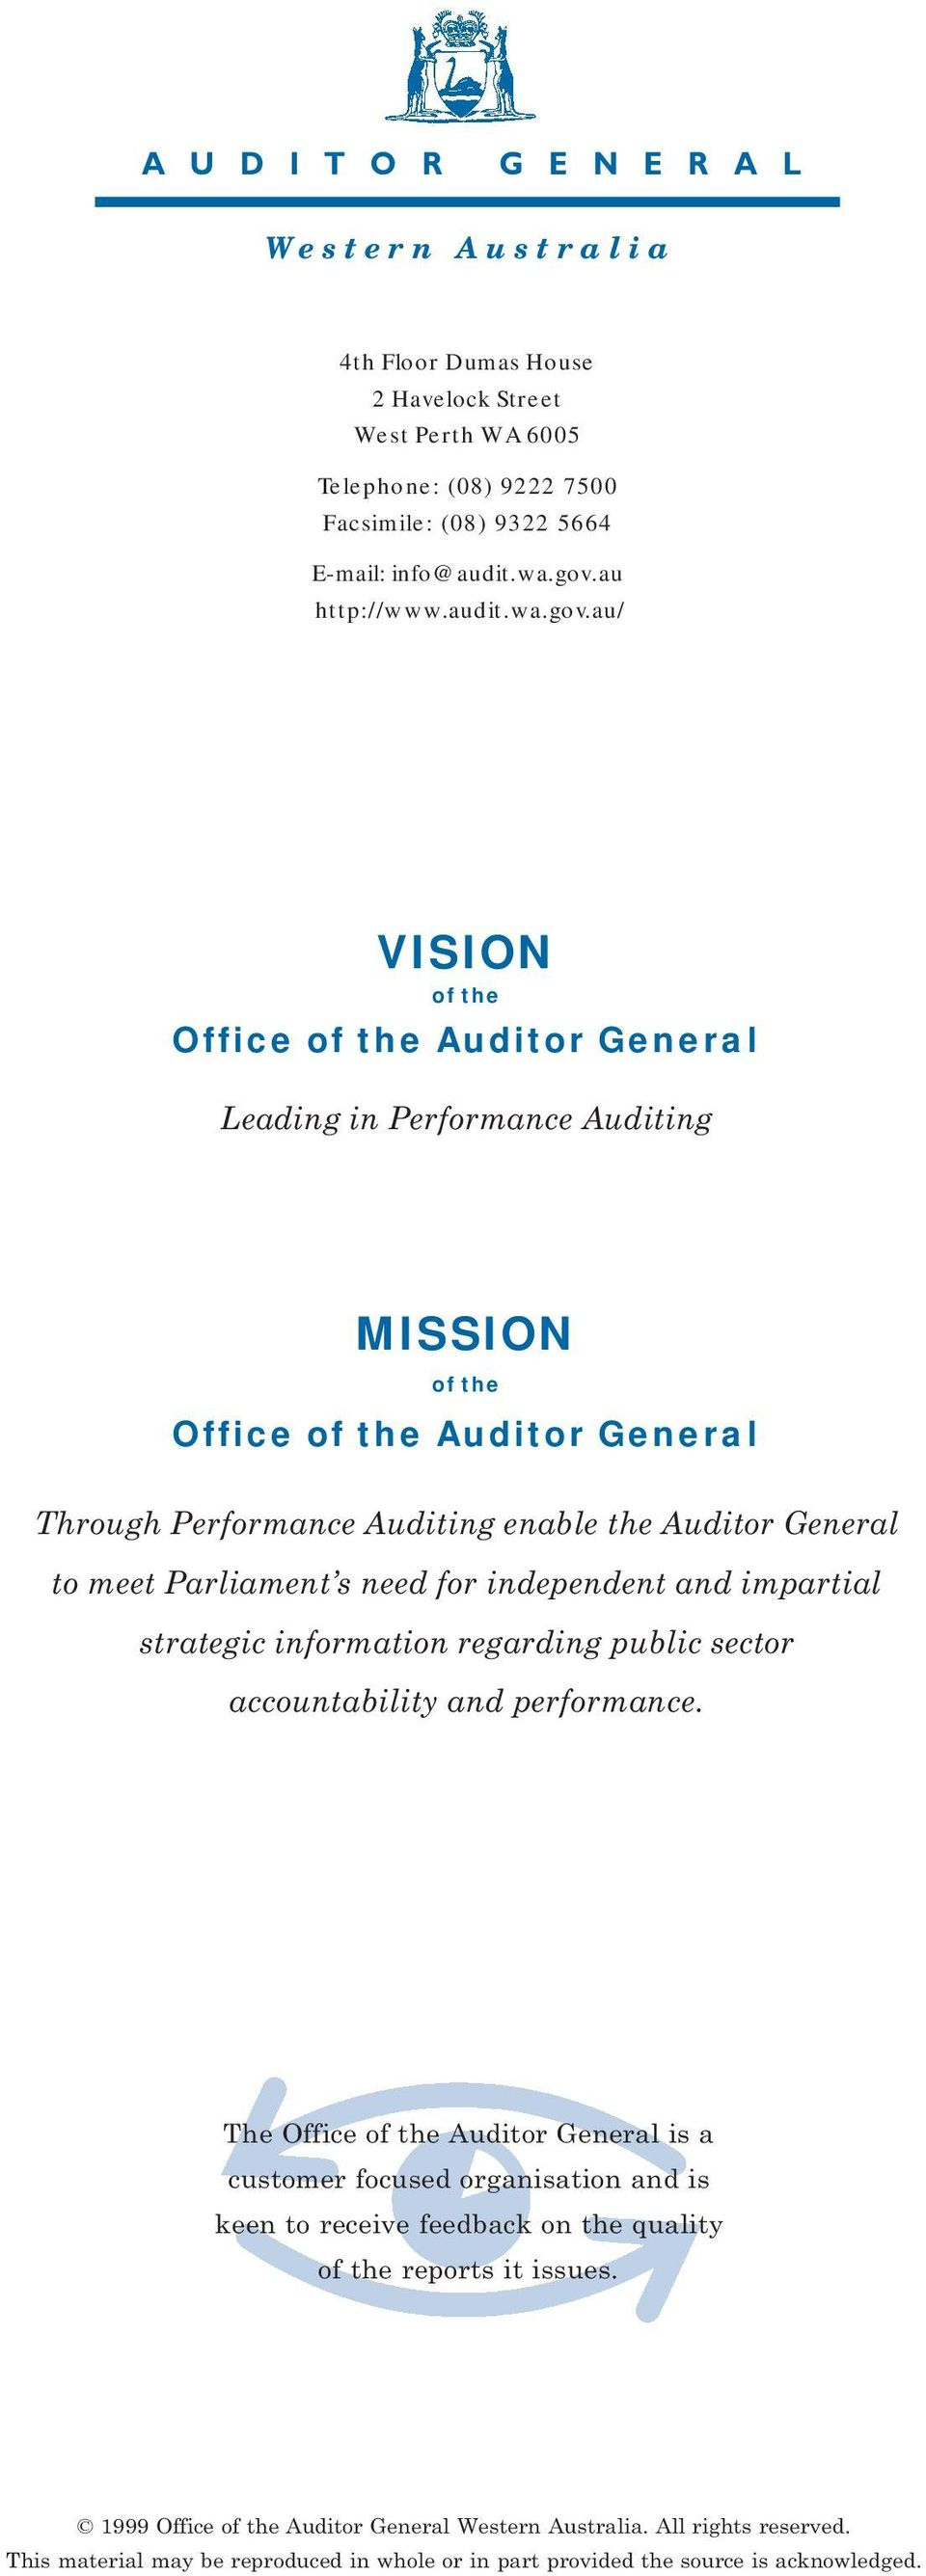 au/ VISION of the Office of the Auditor General Leading in Performance Auditing MISSION of the Office of the Auditor General Through Performance Auditing enable the Auditor General to meet Parliament